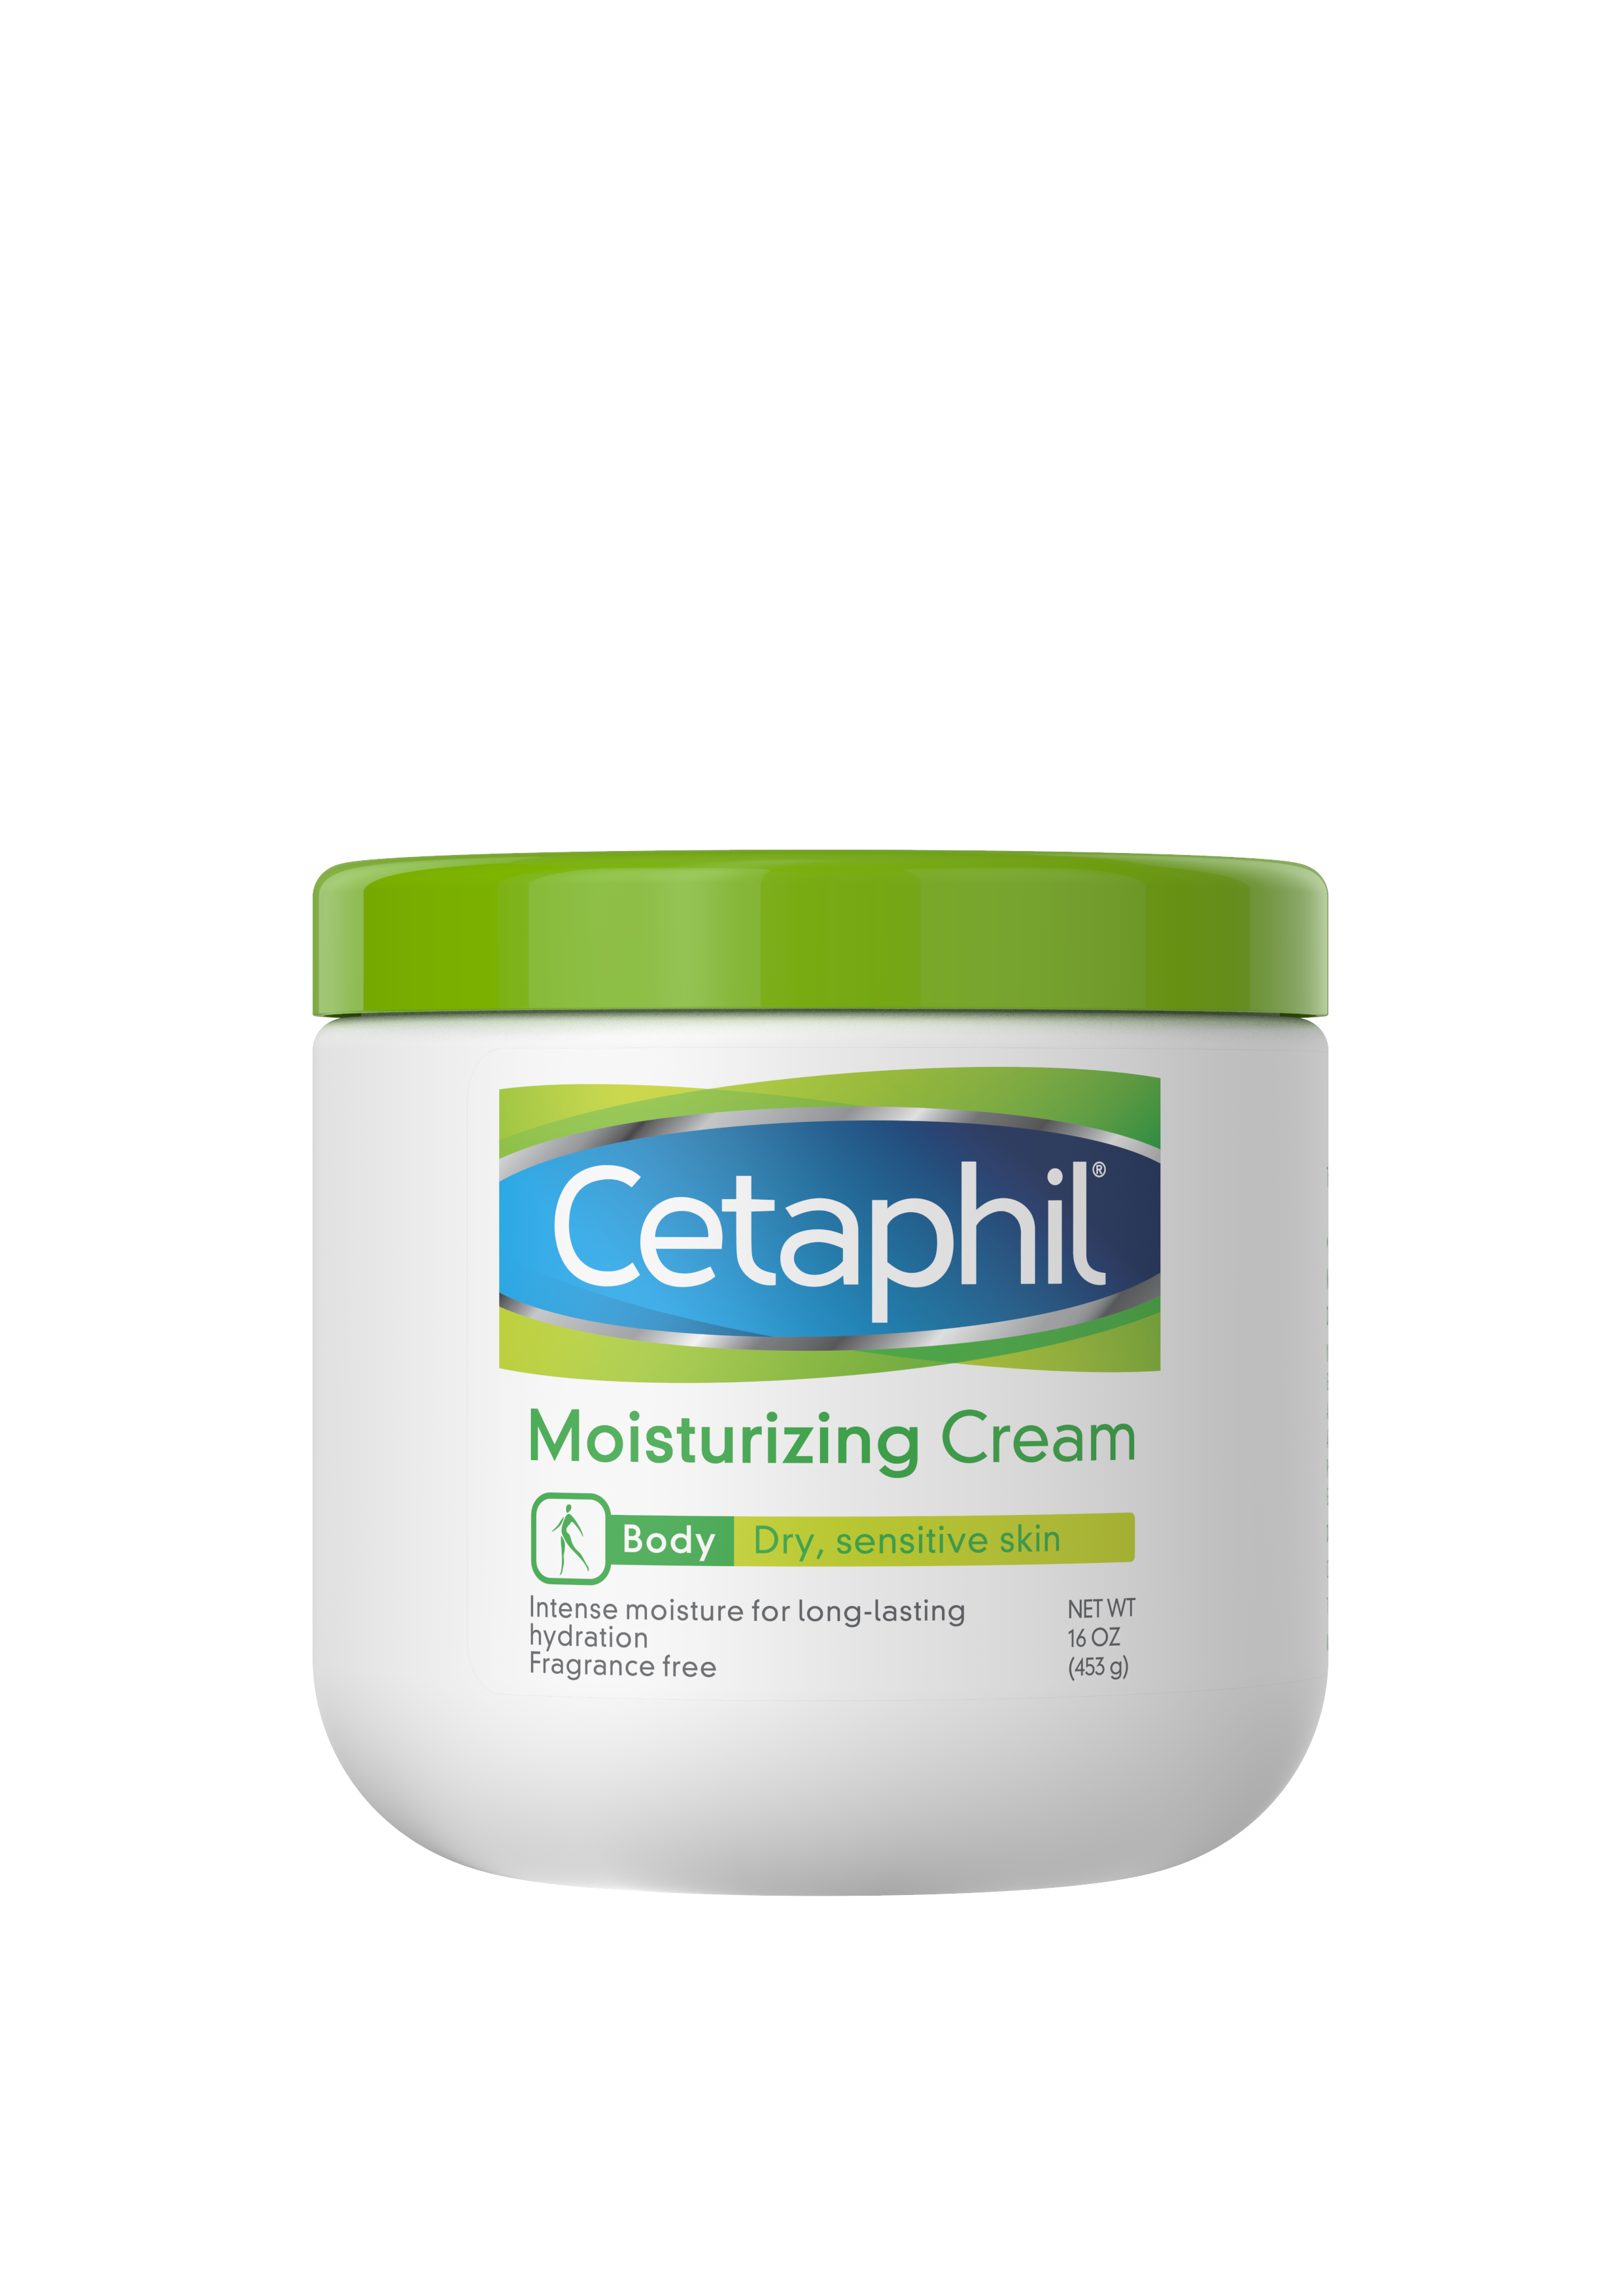 Cetaphil Moisturizing Cream - FRONT